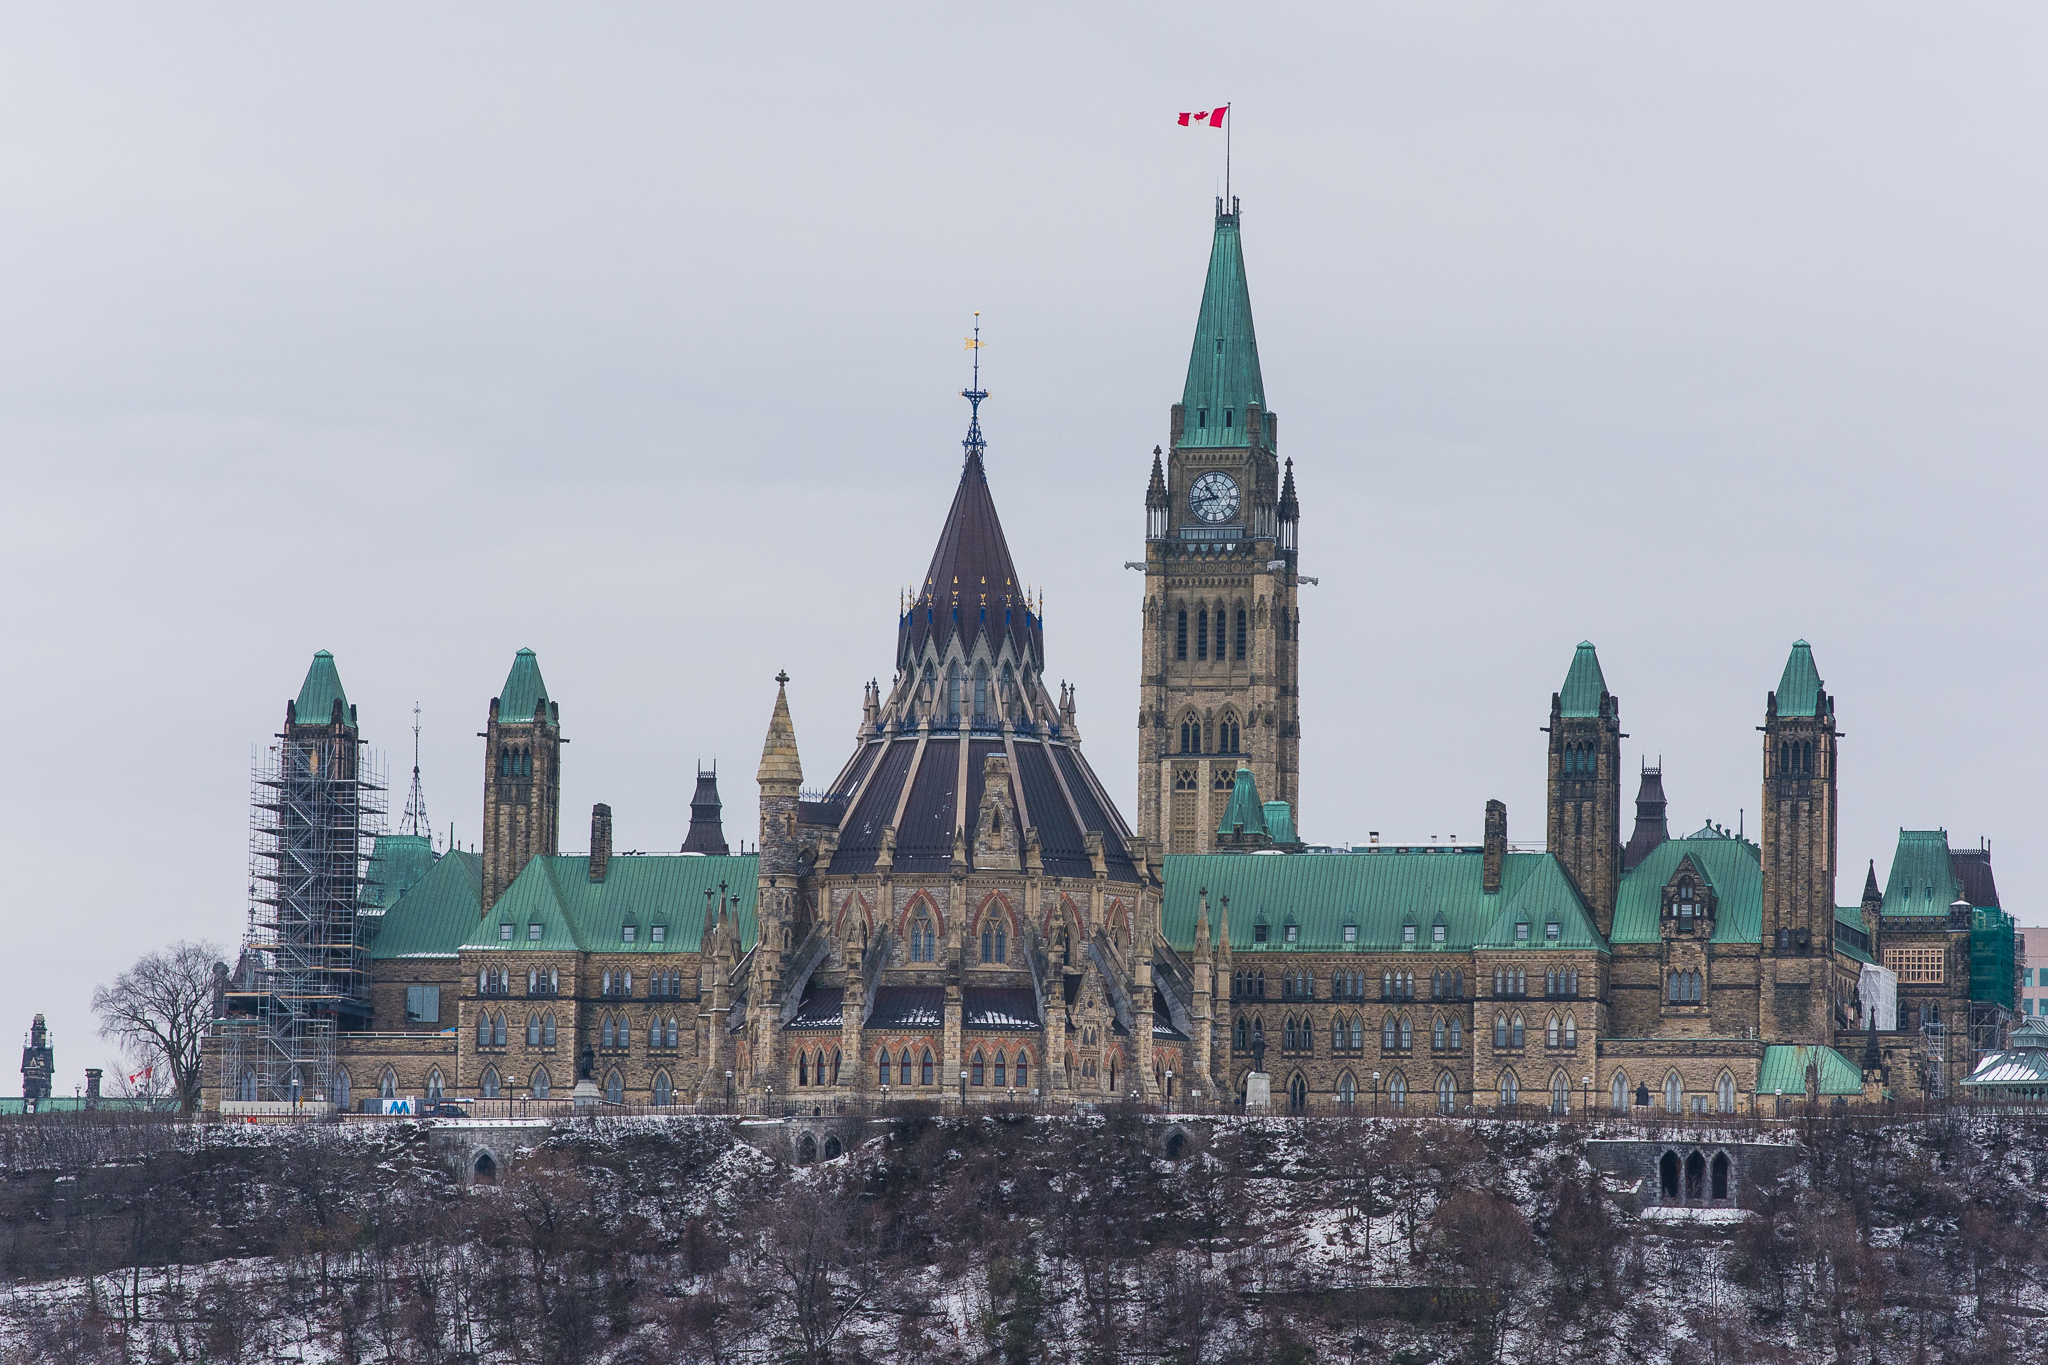 Parliament Hill (1/400s, f/10, ISO400)